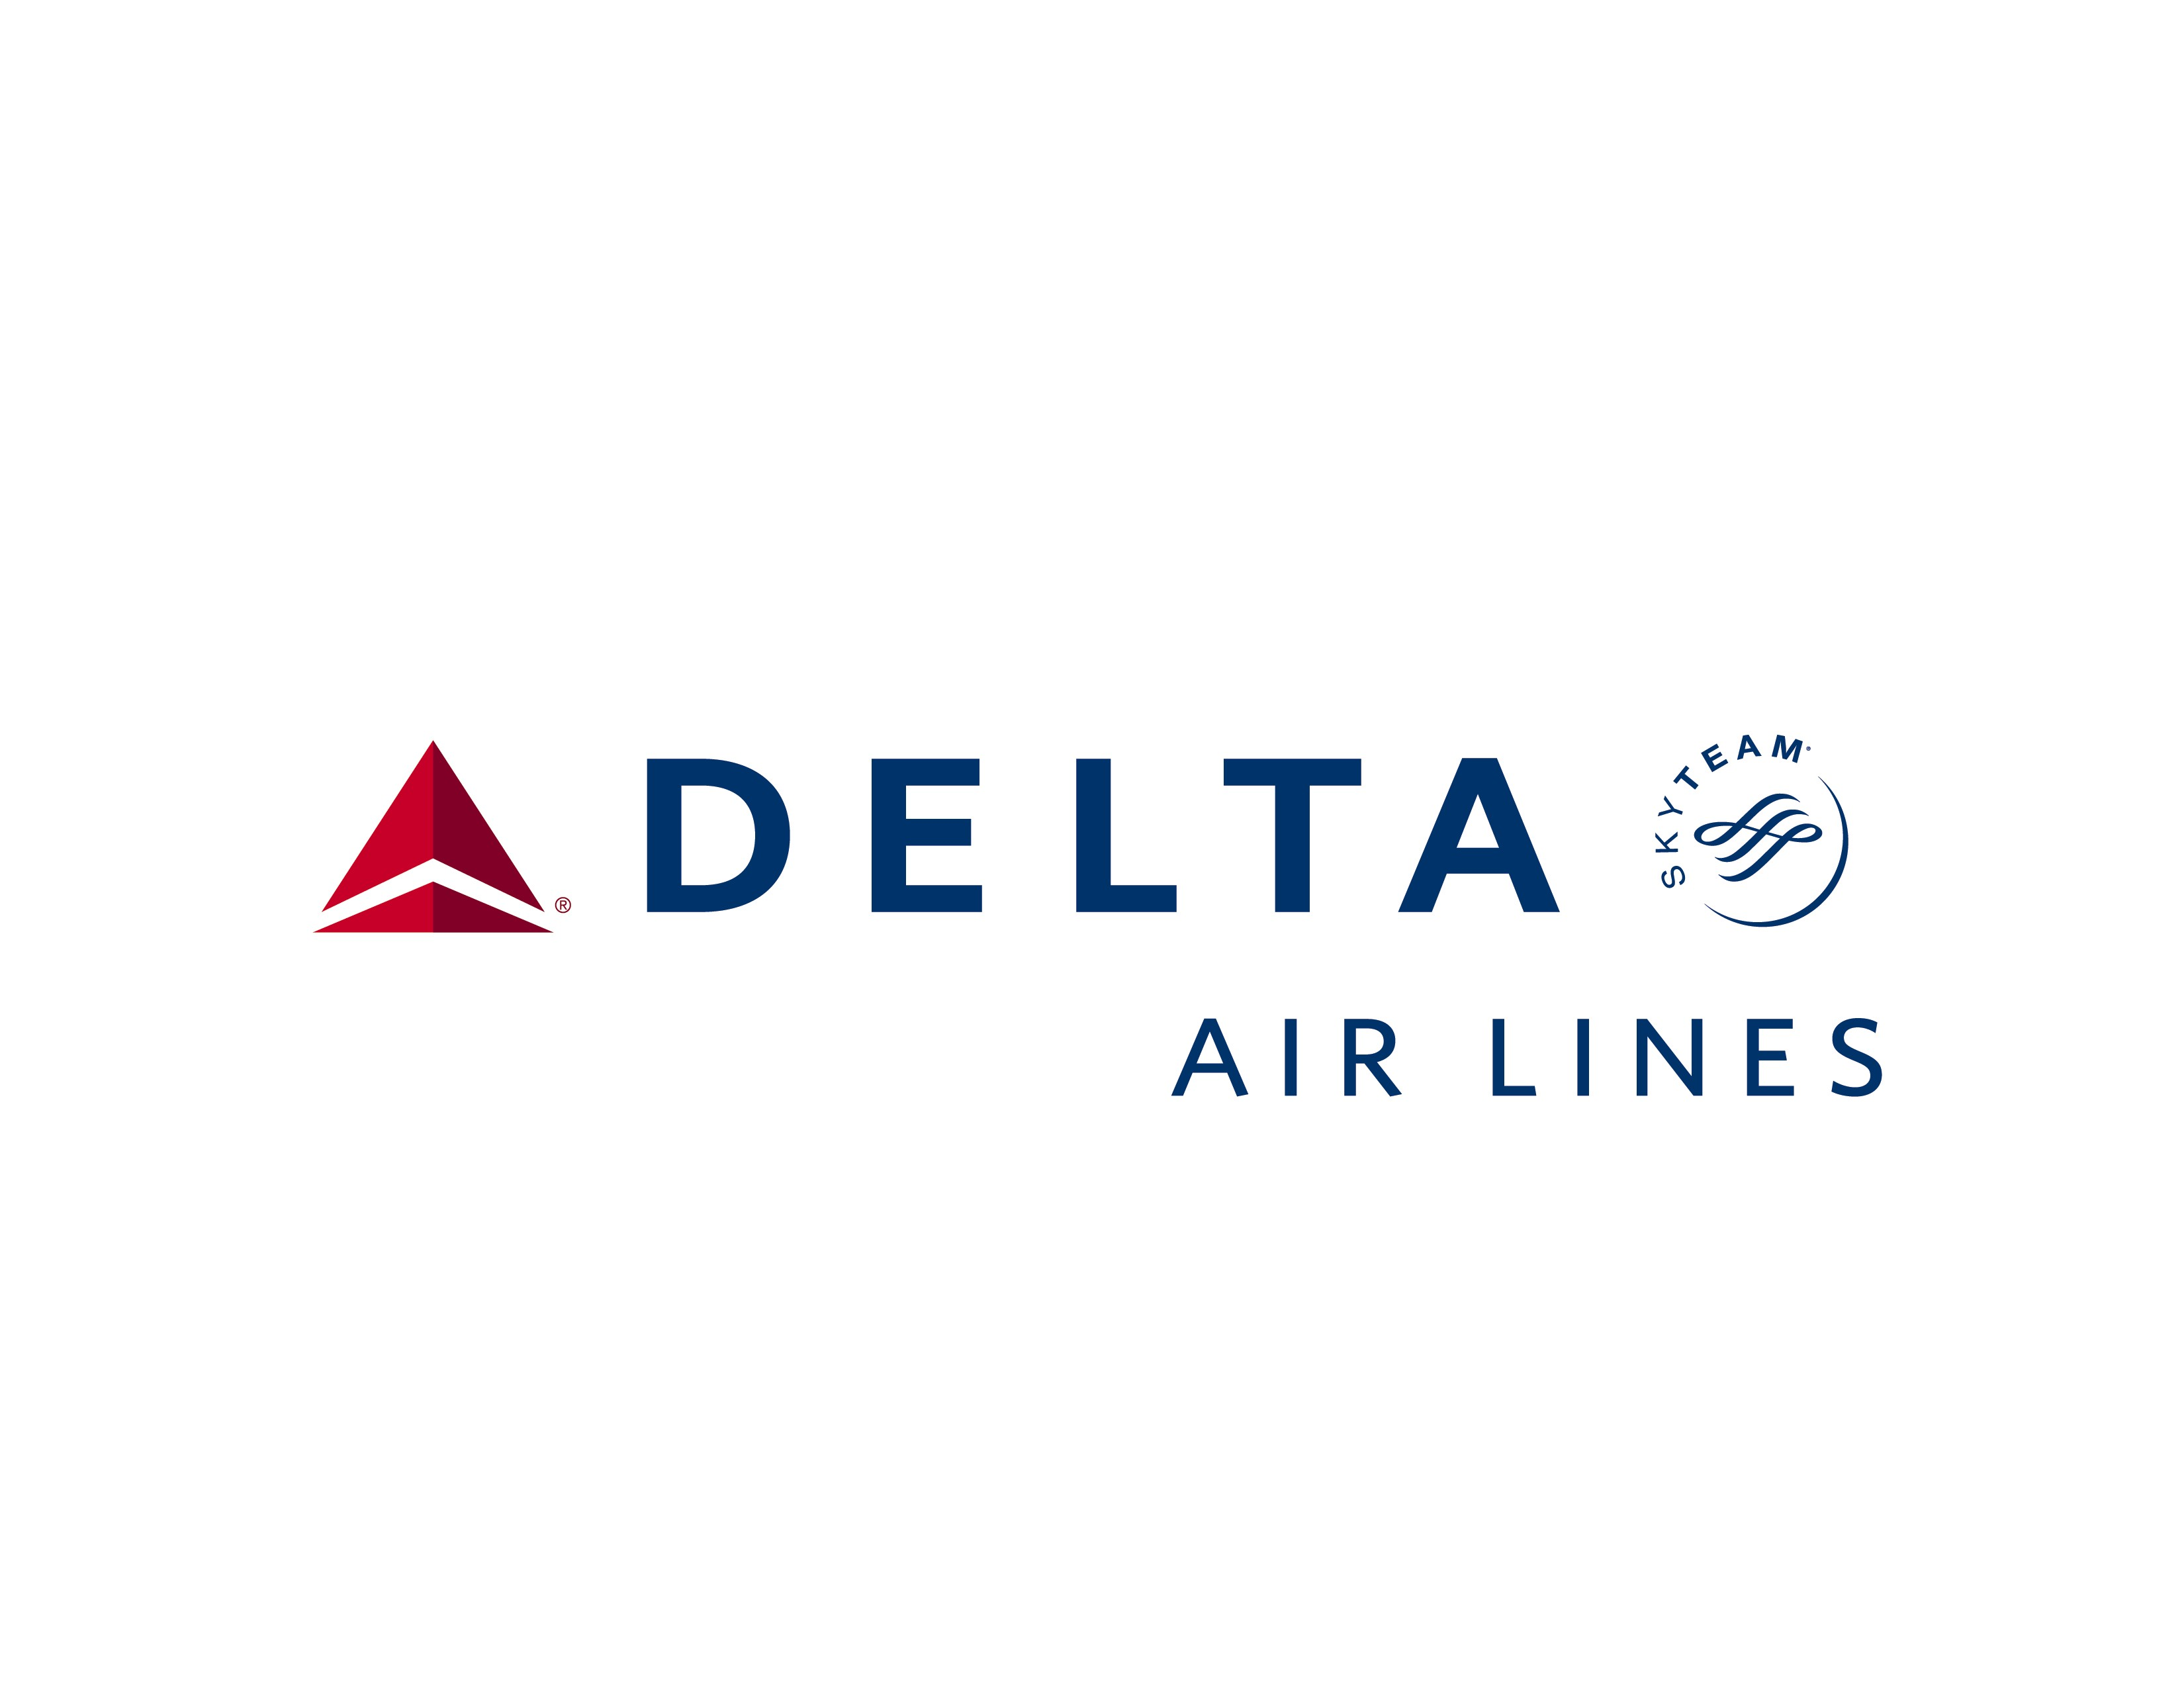 deltaairlines-new-logo2.jpg